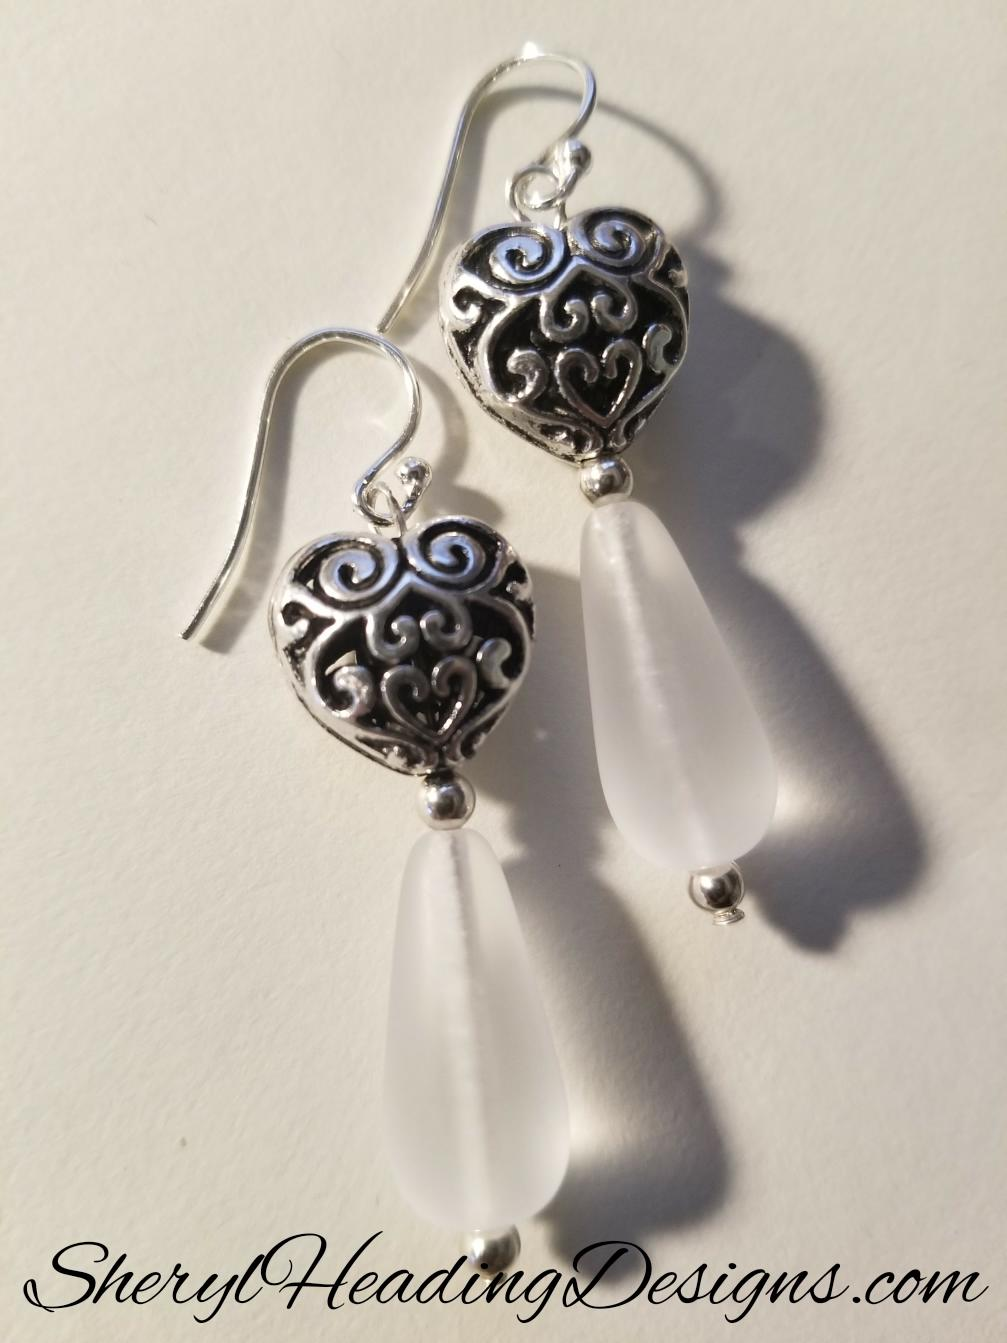 Puffed With Love Silver Heart Earrings - Sheryl Heading Designs